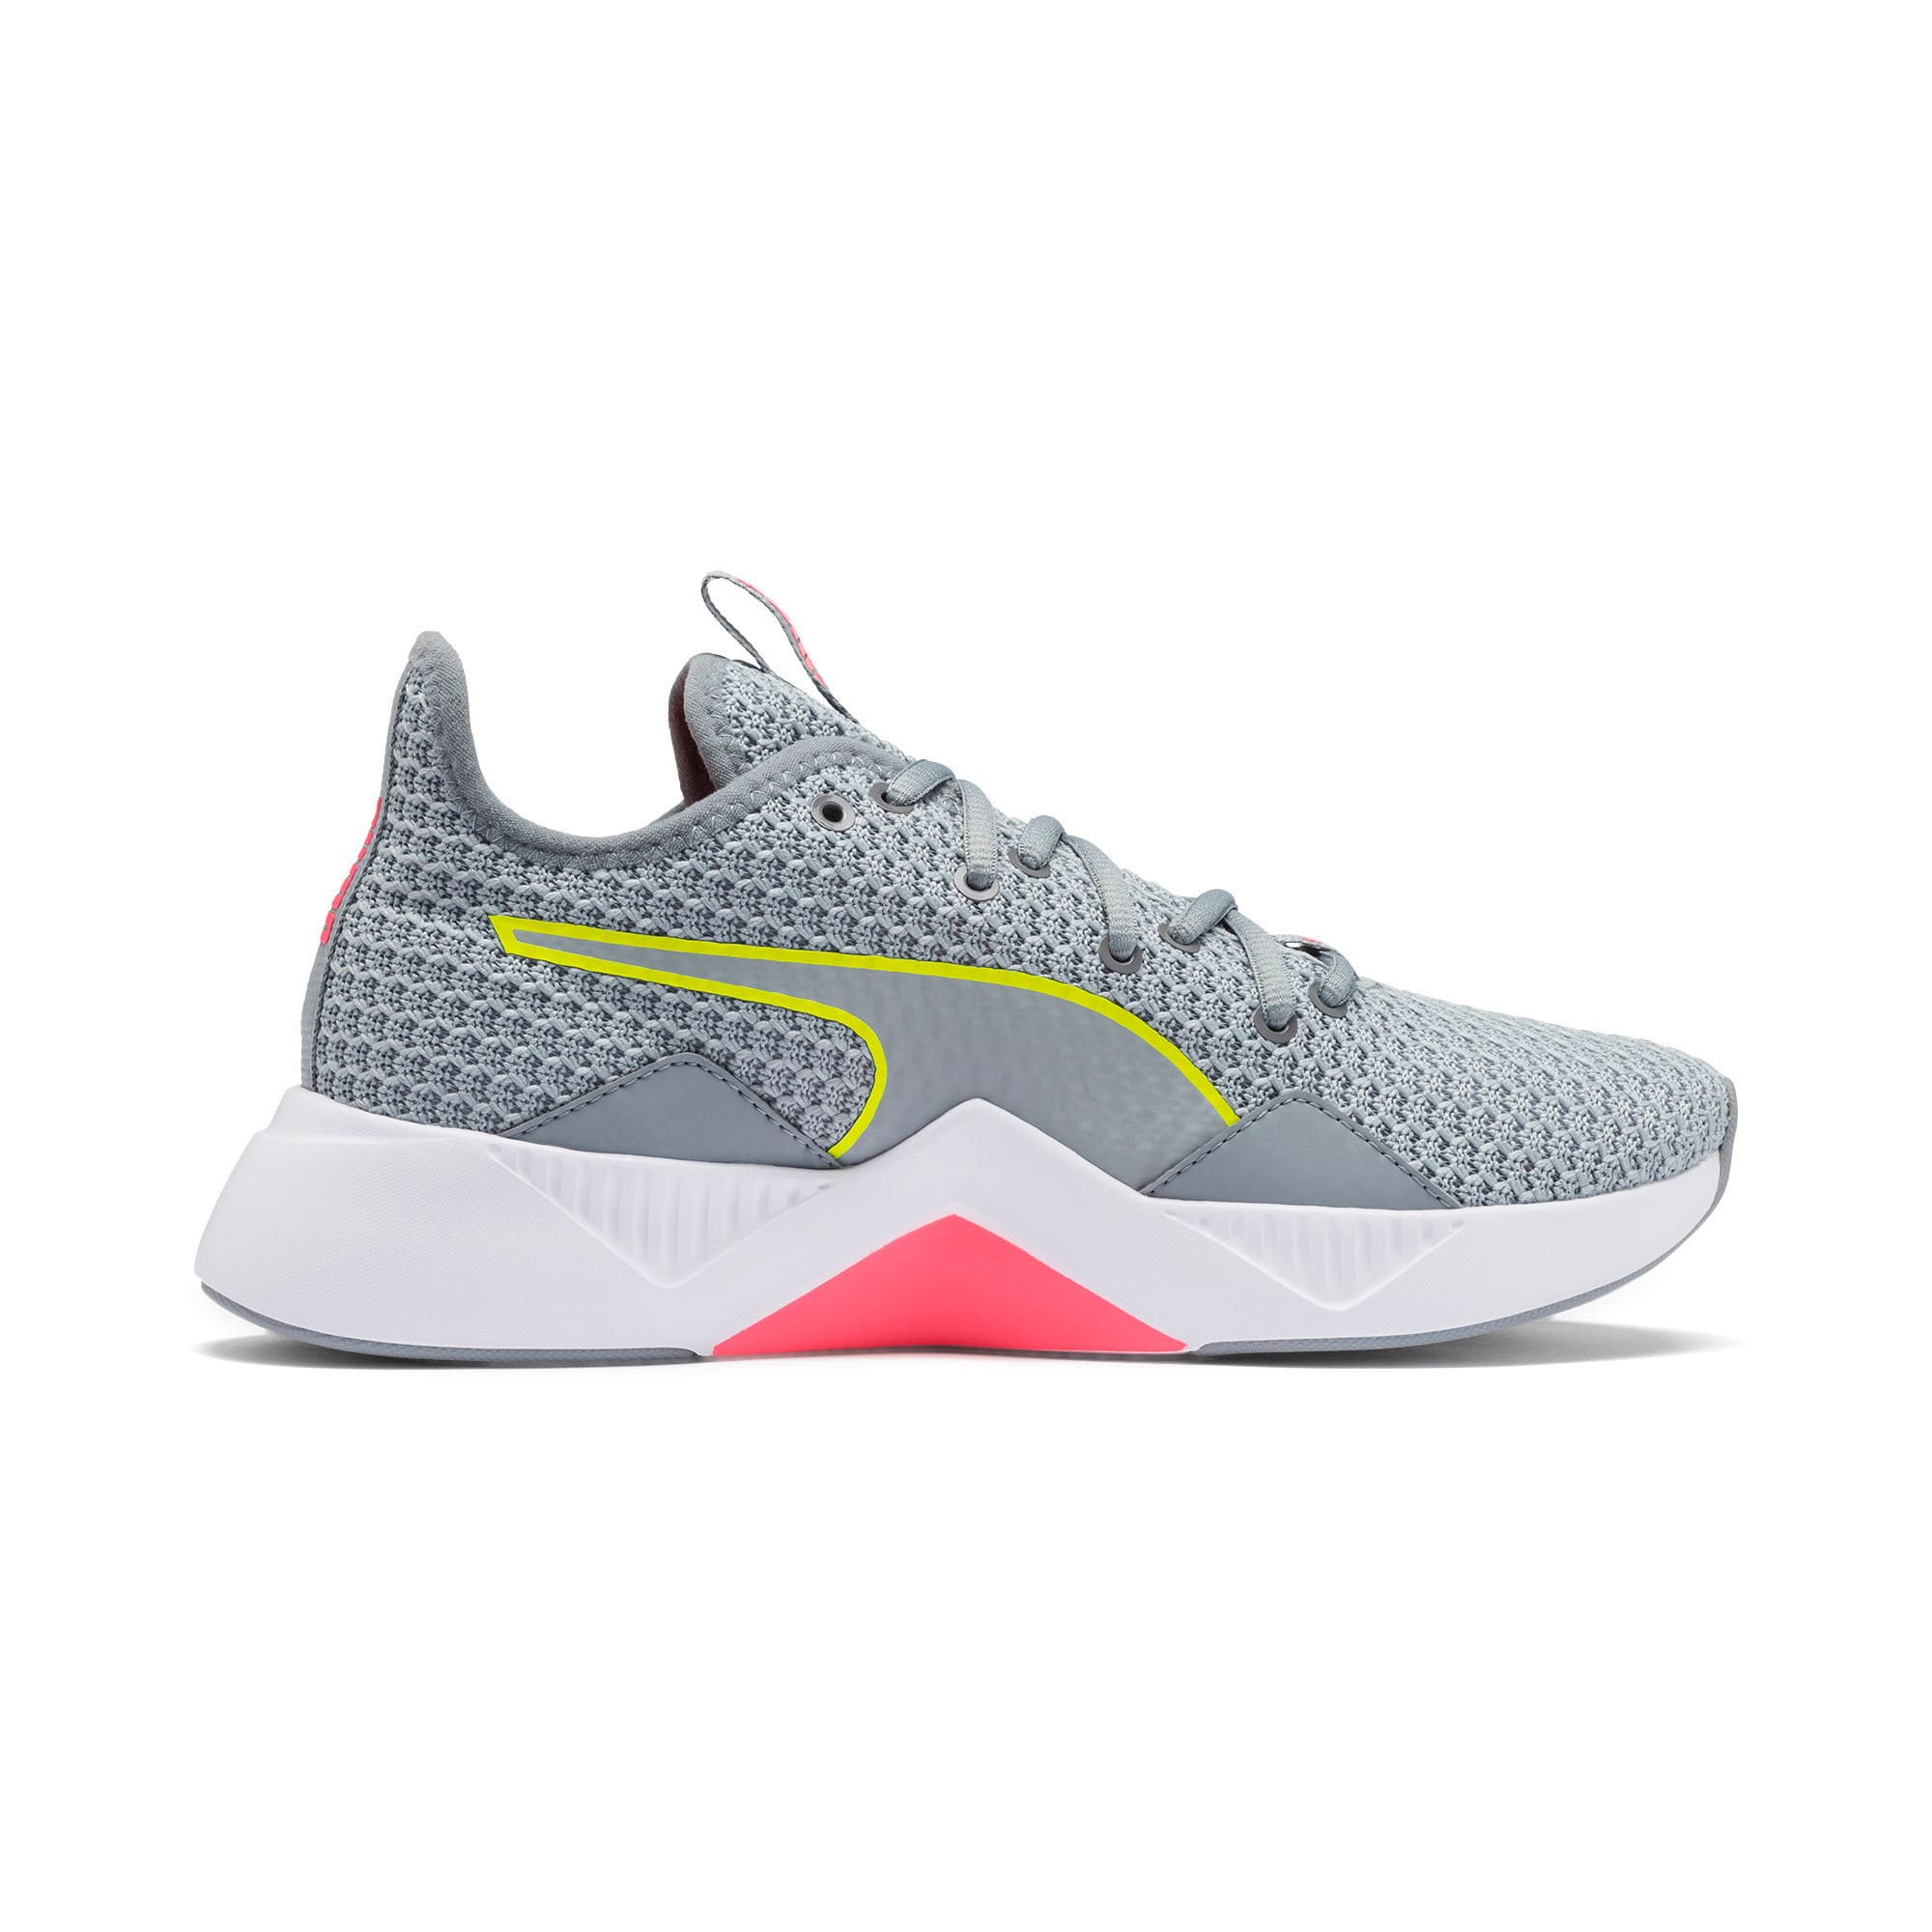 Thumbnail 5 of Incite FS Women's Trainers, Quarry-Yellow-Pink, medium-IND